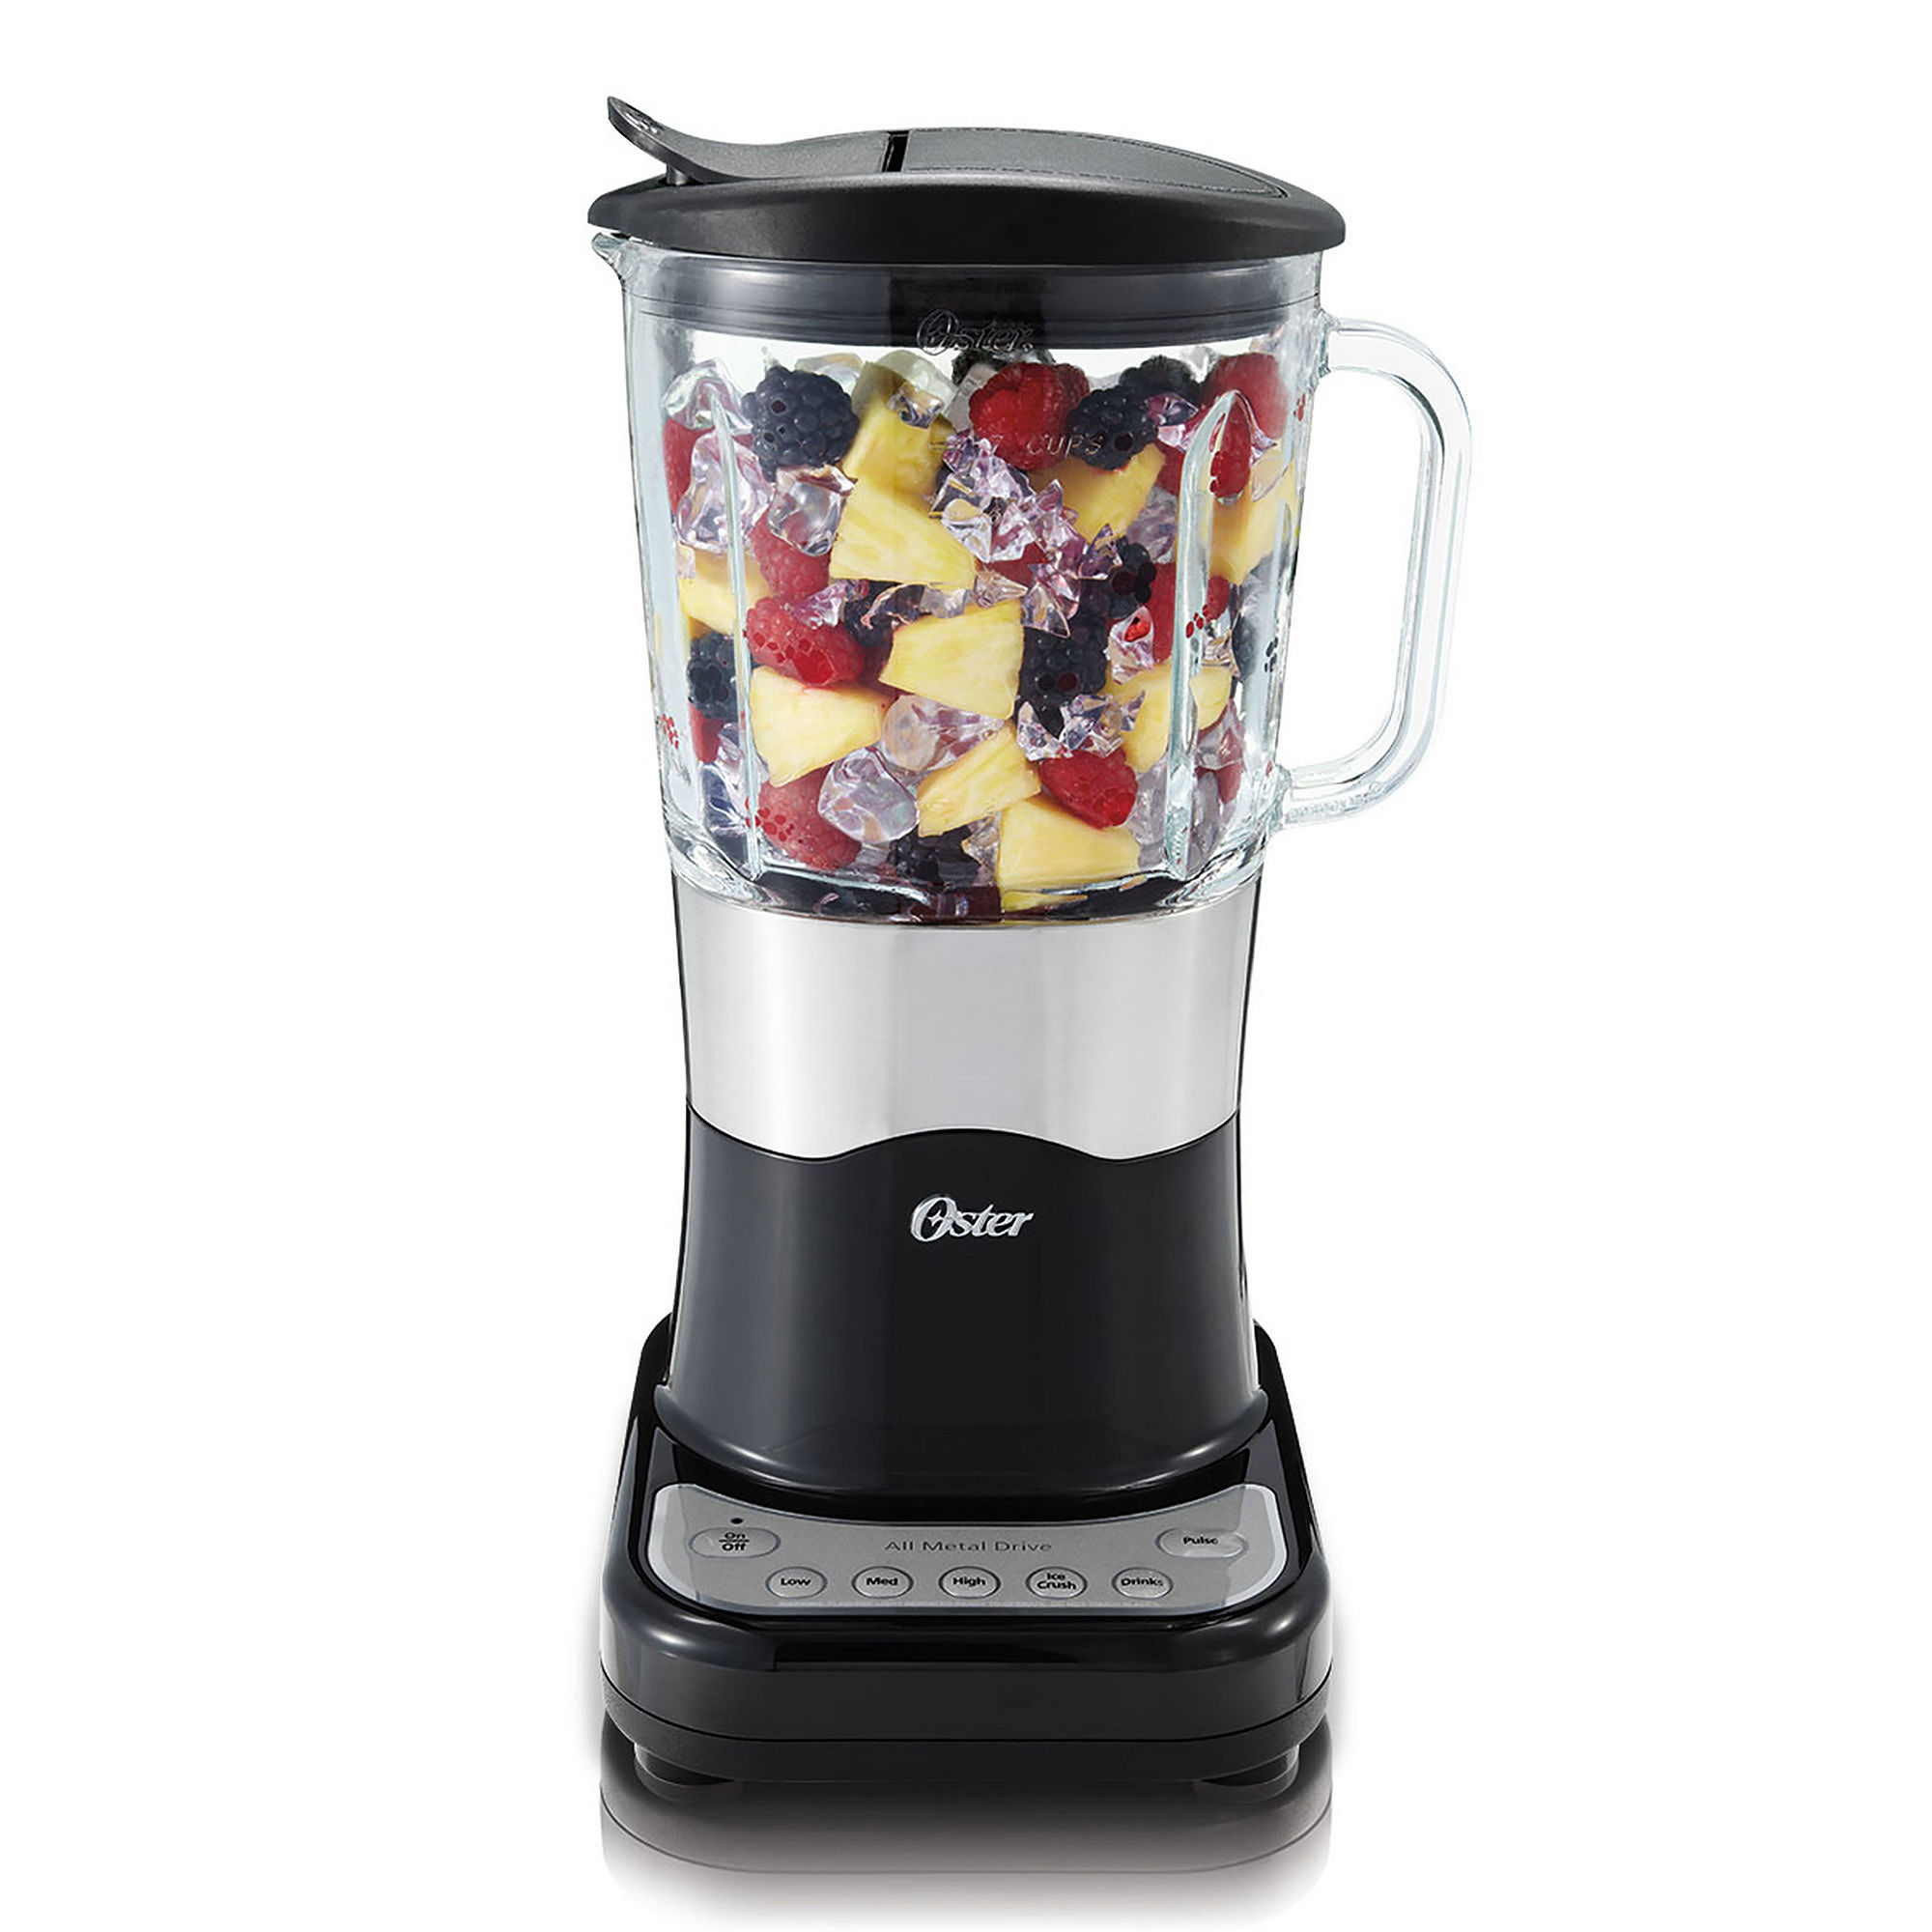 Oster Designer Series 7-Speed Blender